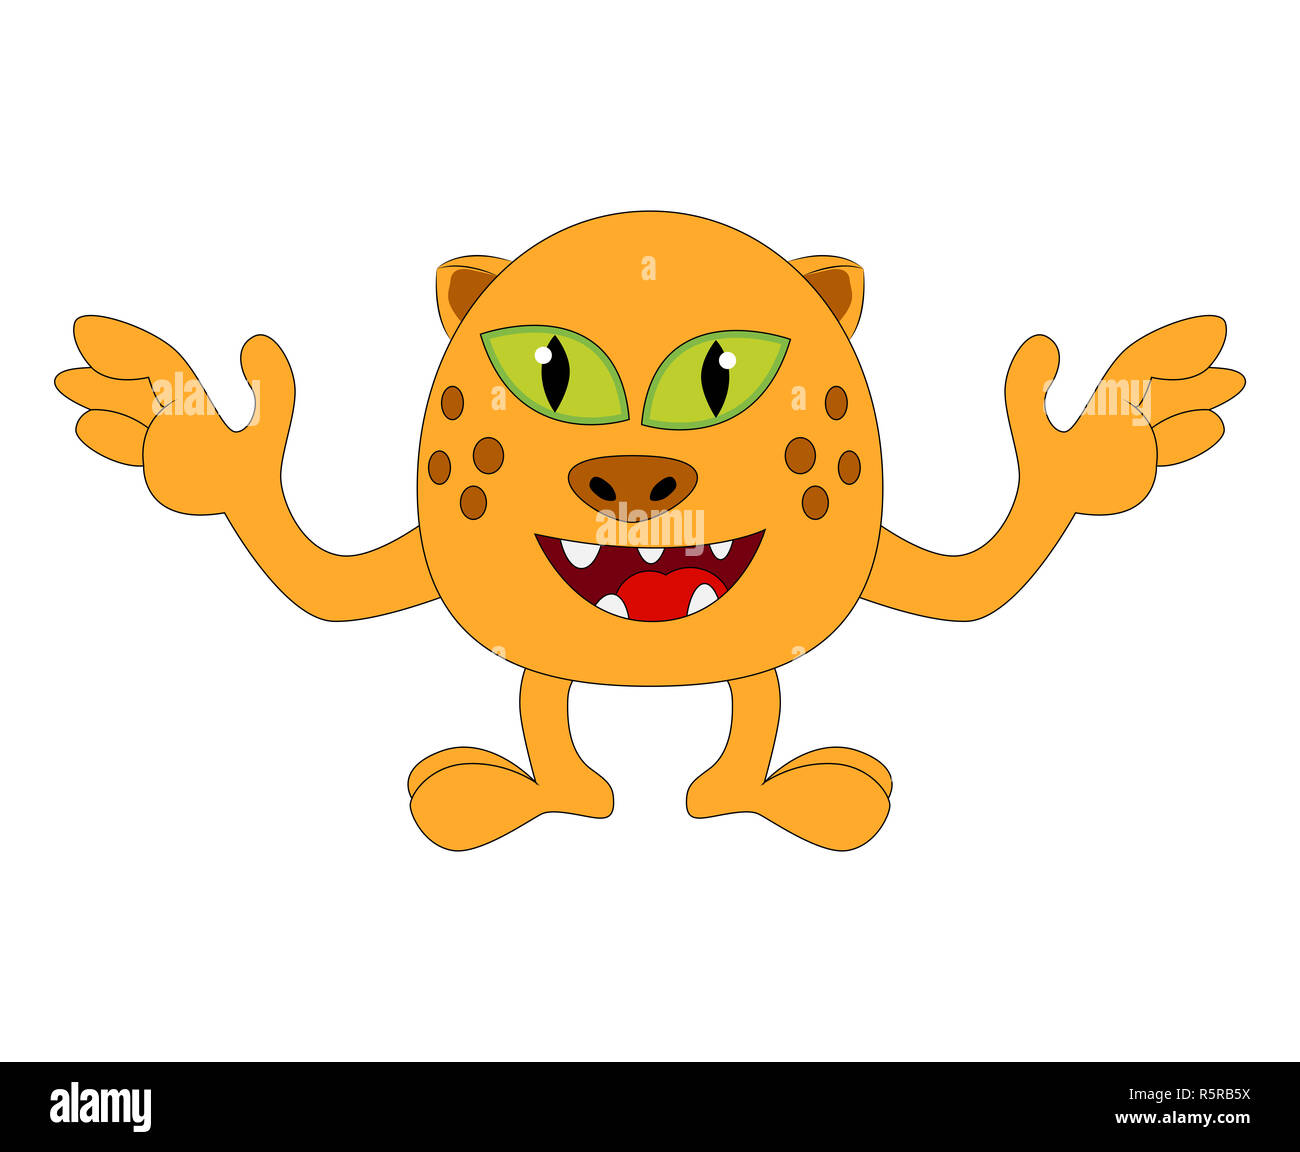 Happy Halloween Monstre De Dessin Anime Drole Cute Tiger Cat Illustration Vectorielle Caractere Isole Sur Fond Blanc Photo Stock Alamy